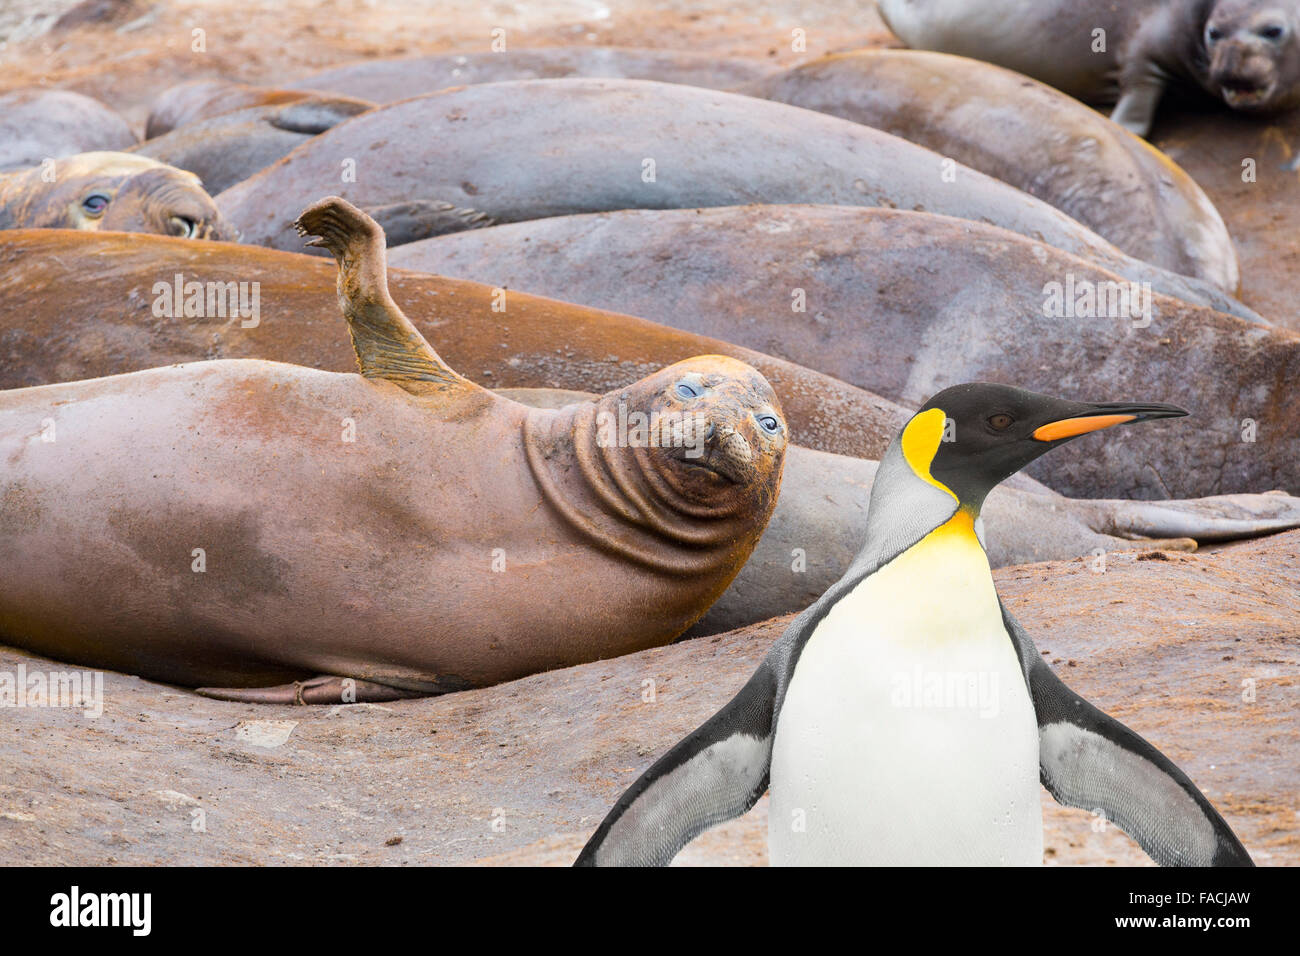 Southern Elephant Seals; Mirounga leonina, at Hannah Point, on livingston Island in the South Shetland Islands off Stock Photo